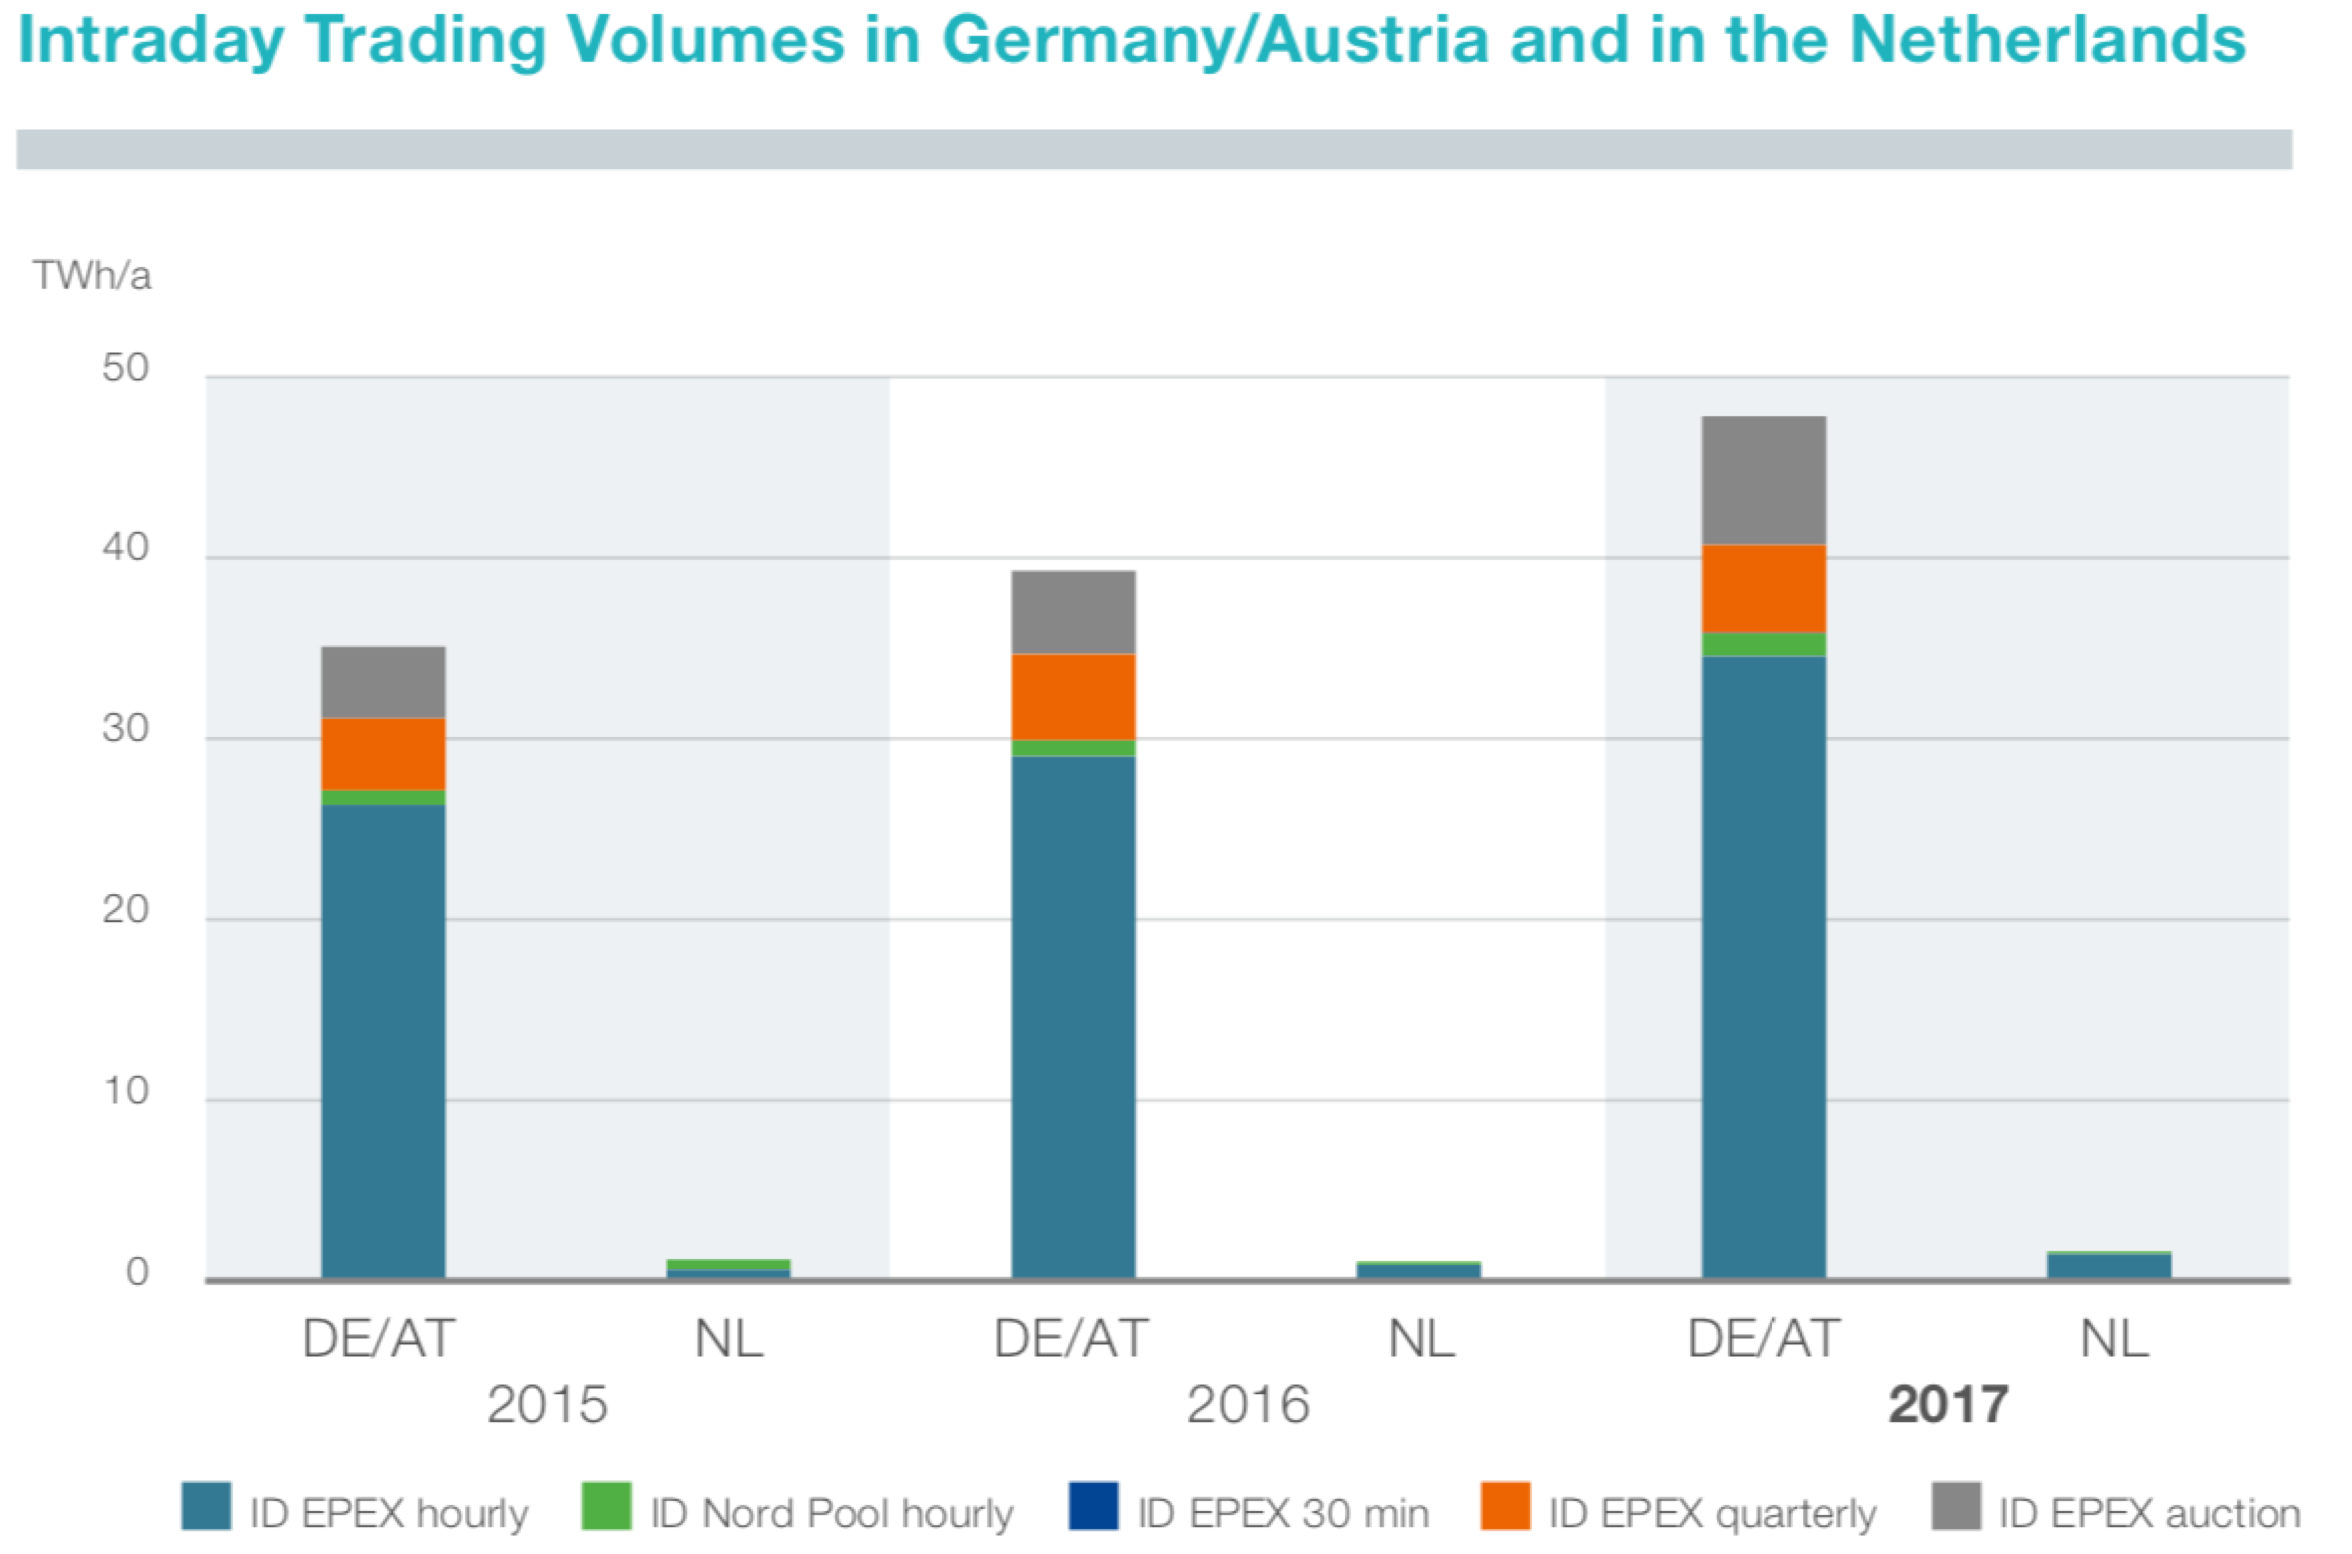 Figure 3: Intra-day trading volumes in Germany/Austria and in the Netherlands from 2015-2017 (TenneT 2018)